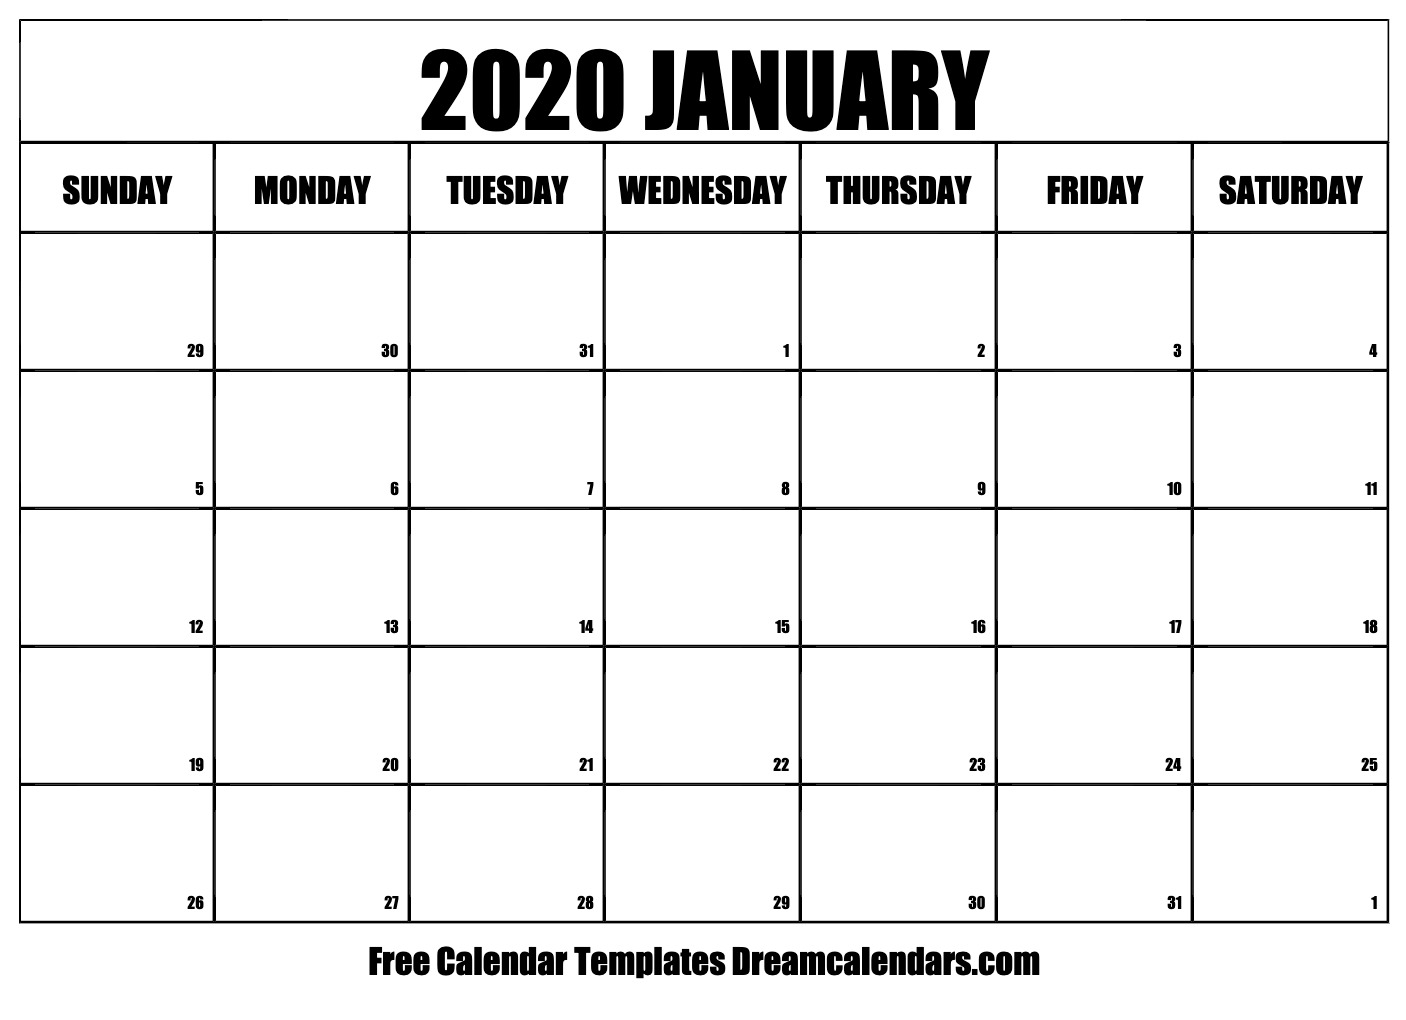 Free Calendar Templates 2020 Printable January 2020 Calendar Templates   Helena Orstem   Medium